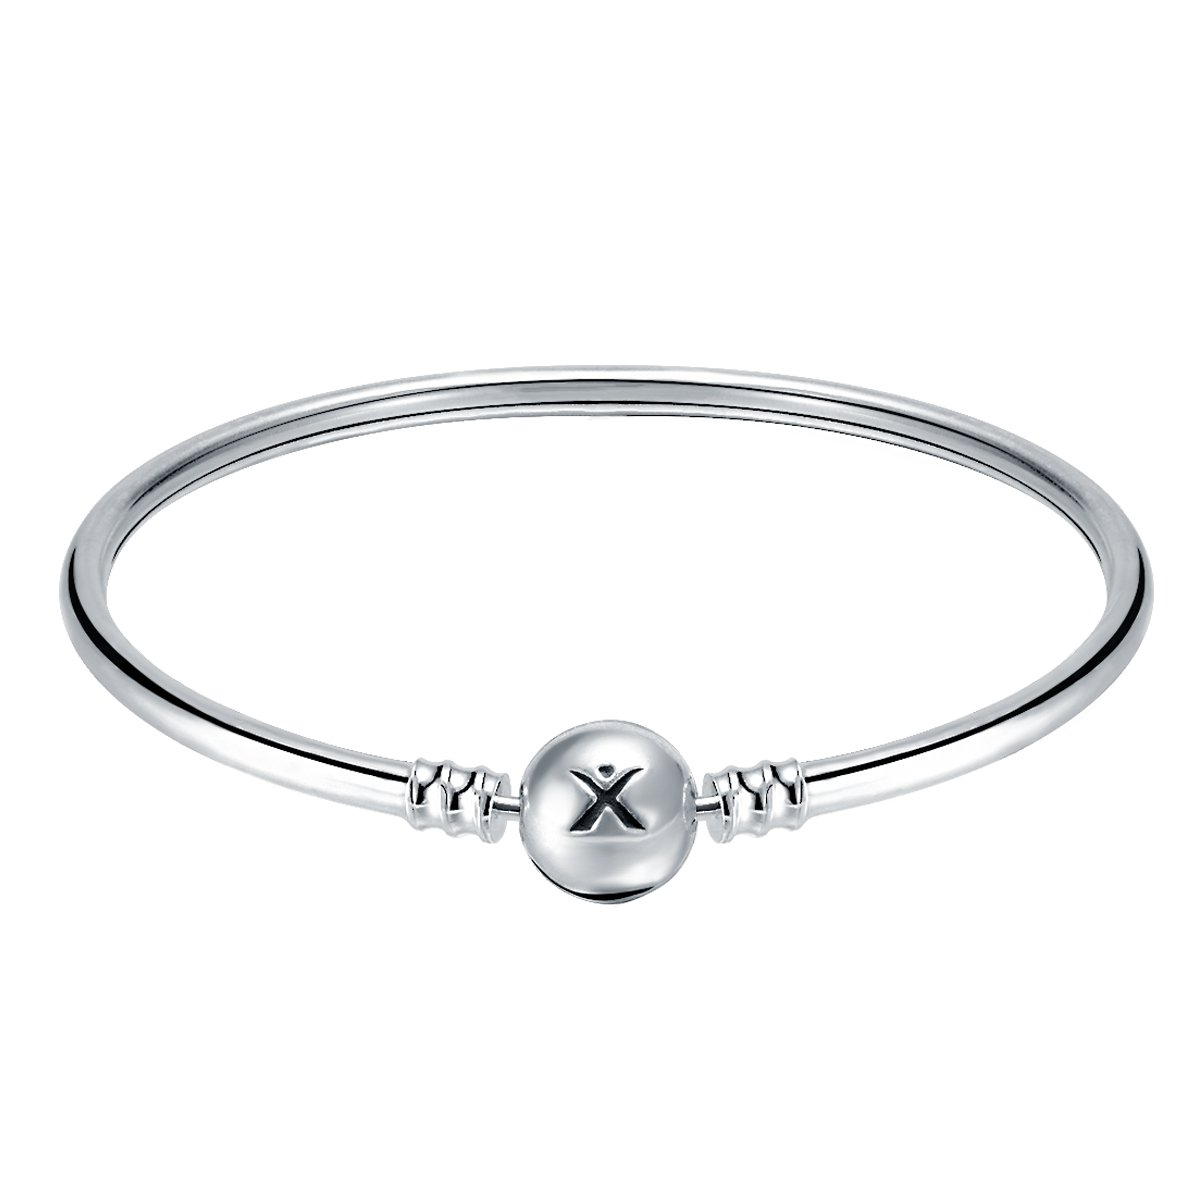 Changeable 925 Sterling Silver Women Charms Bracelet (Smooth Bangle) 21CM